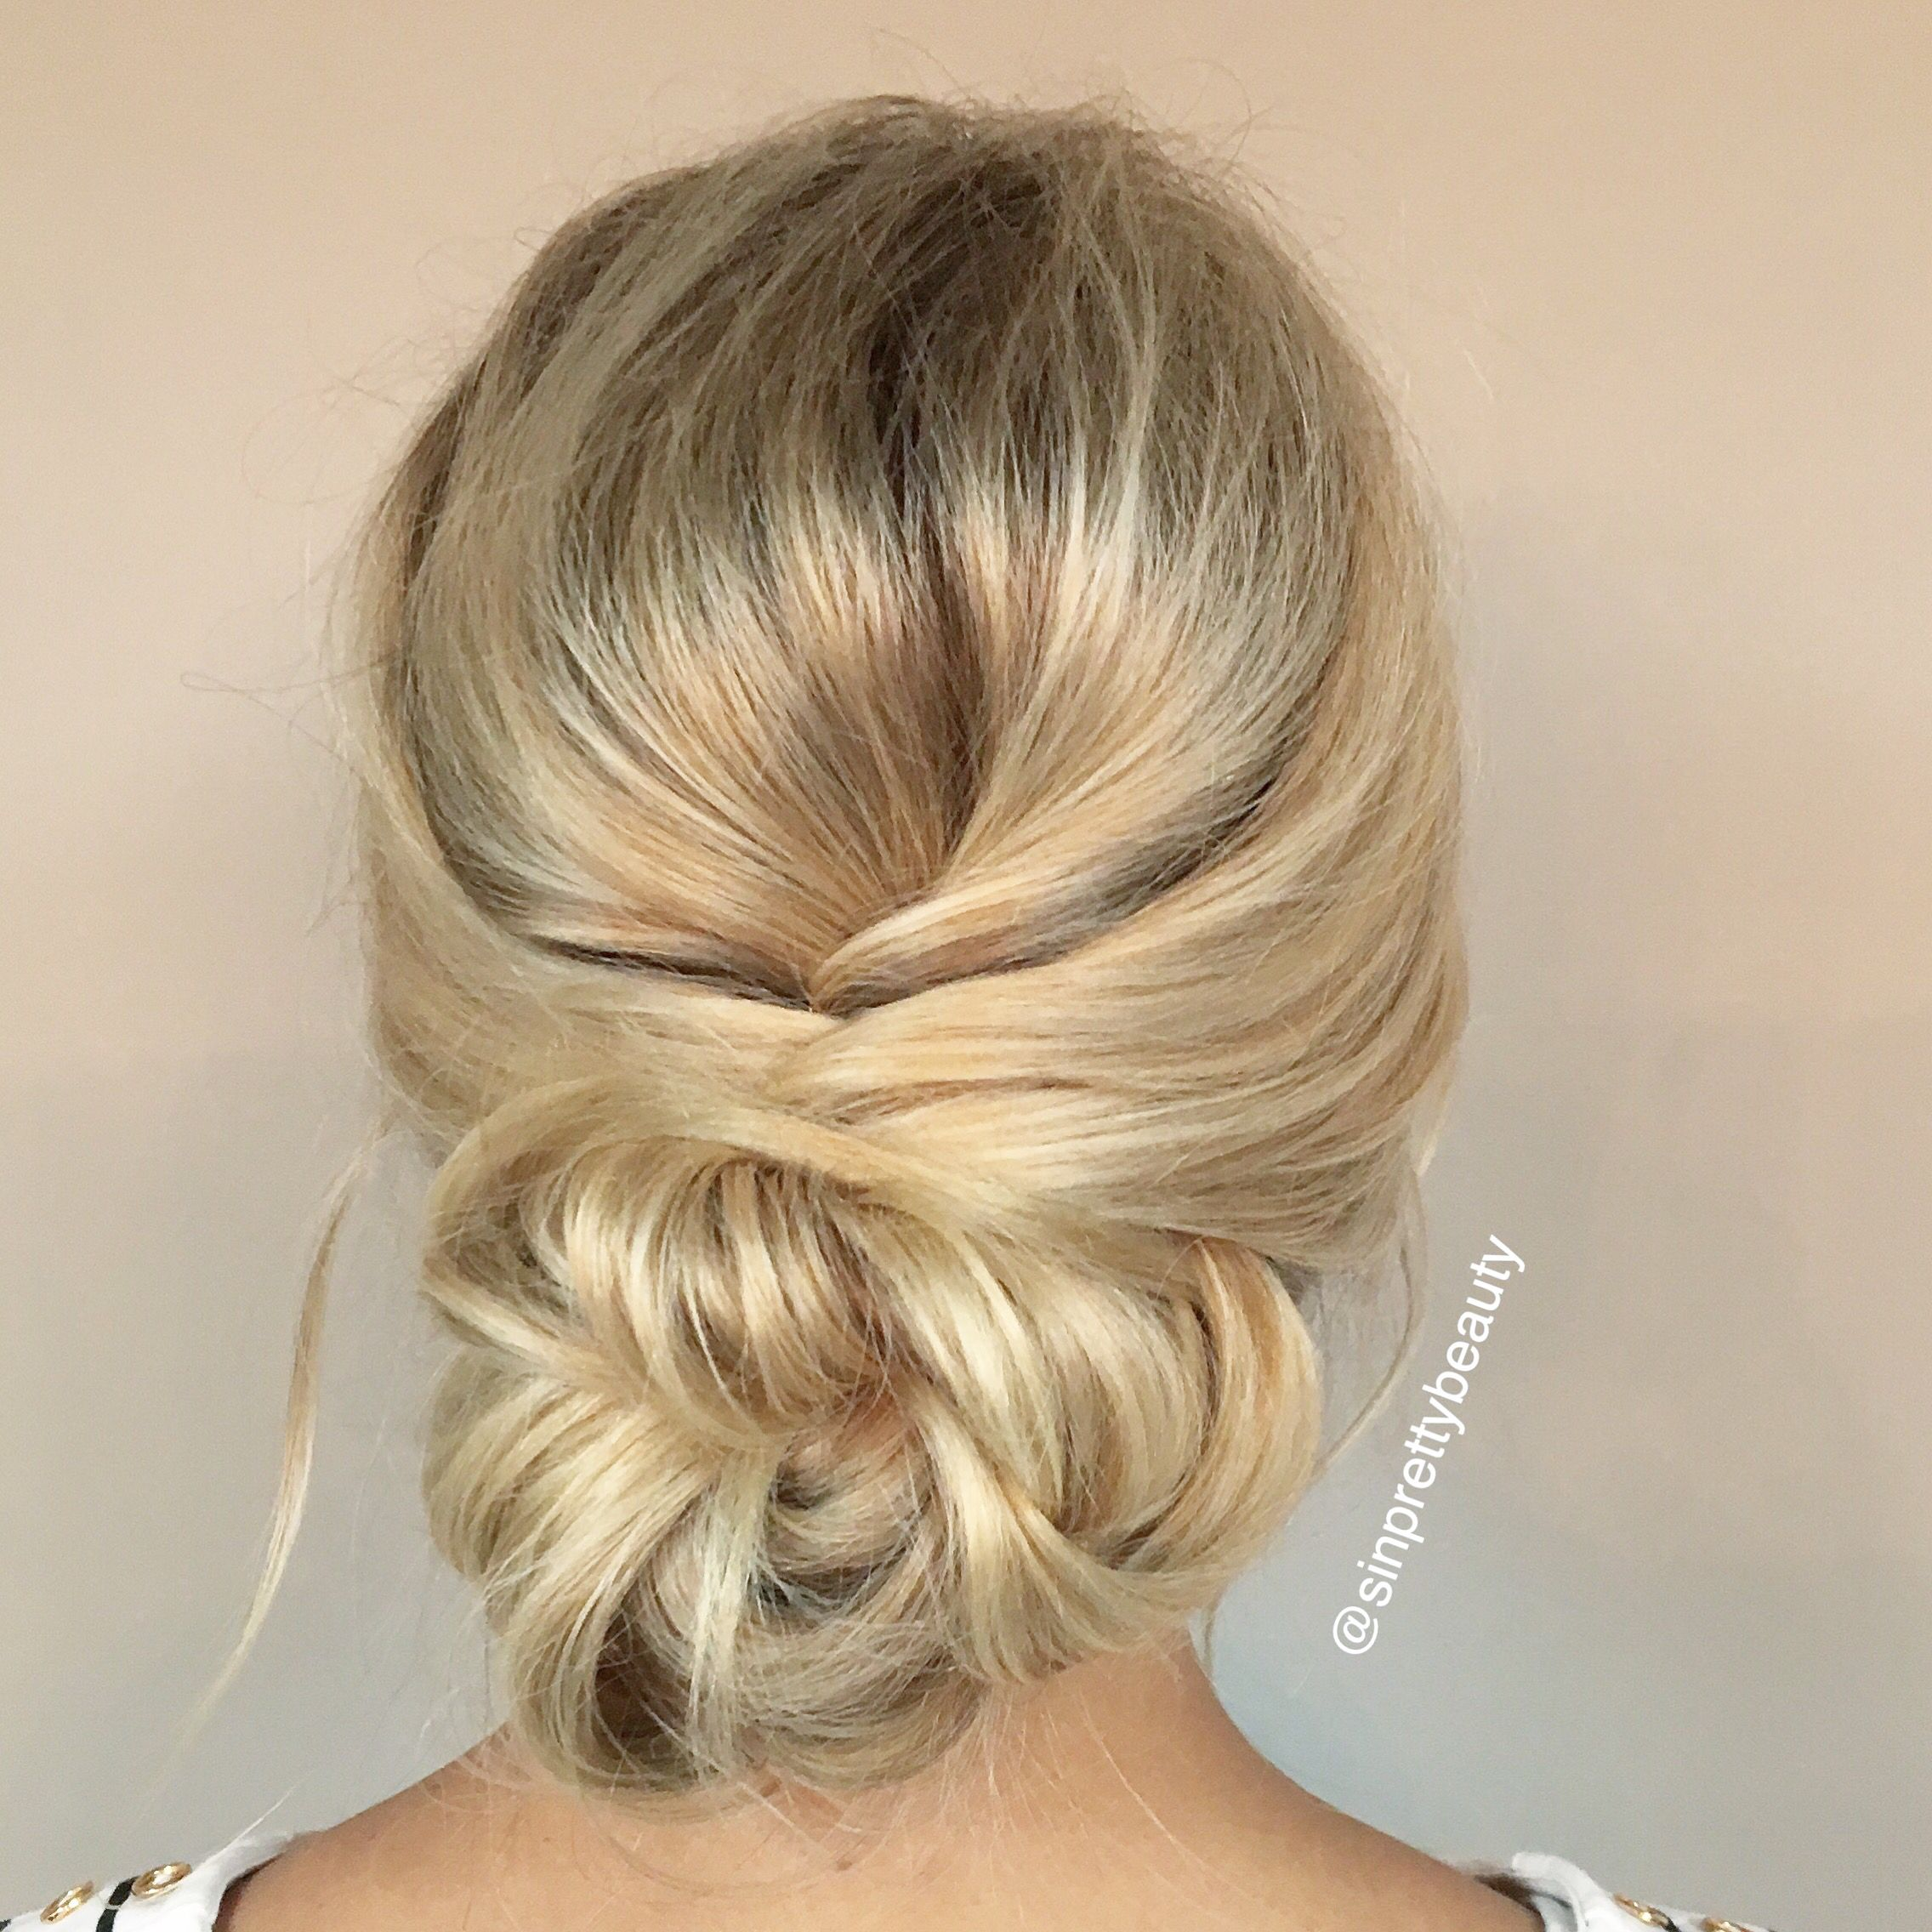 bridal hair, low bun, romantic hair style, updo, blonde